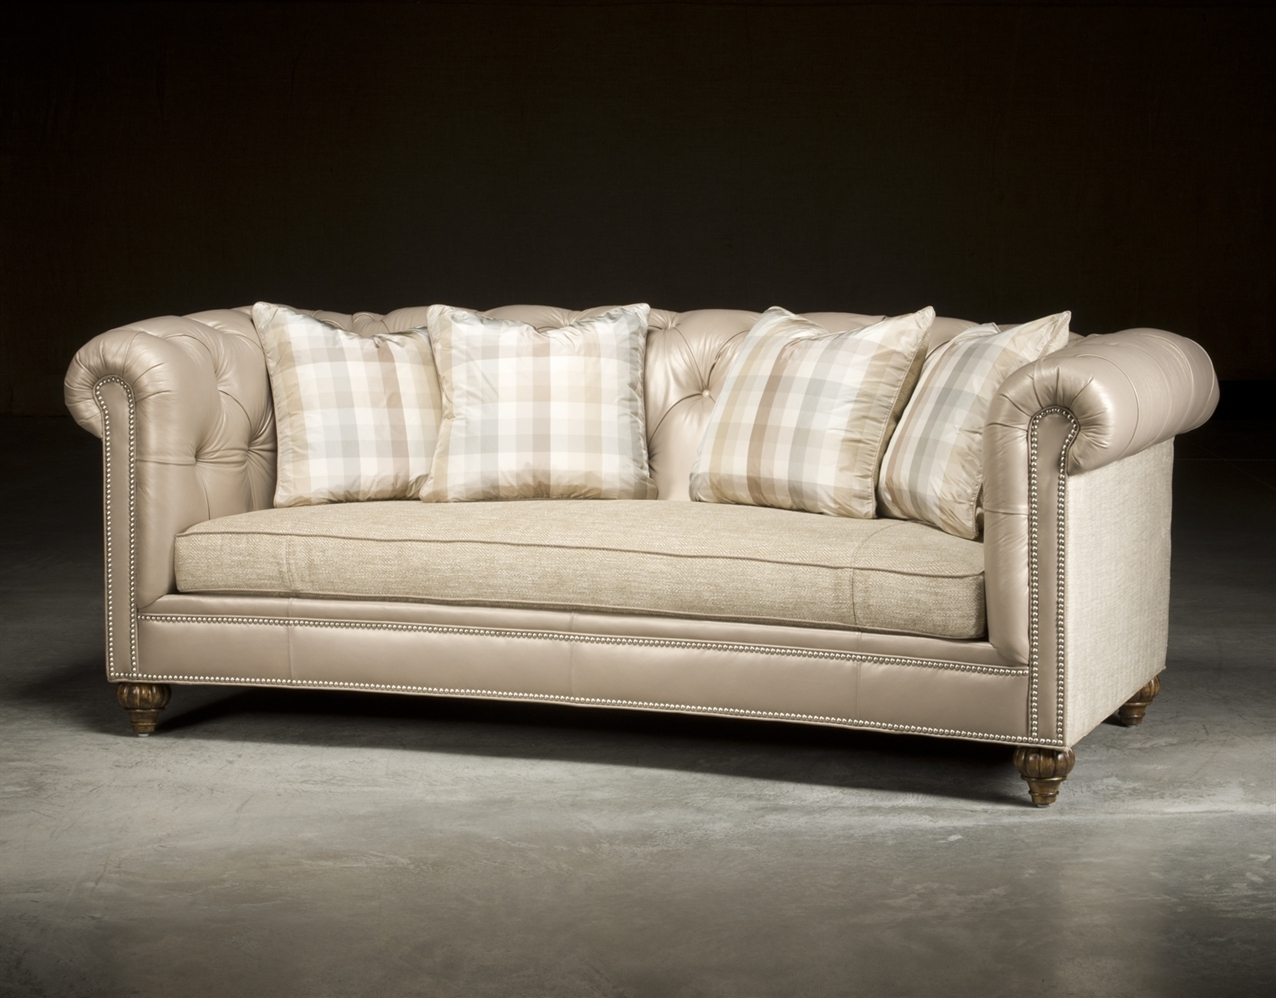 Newest Sofa : Formal Sofa Sofa Clearance High Quality Furniture Brands Inside Mid Range Sofas (View 6 of 20)